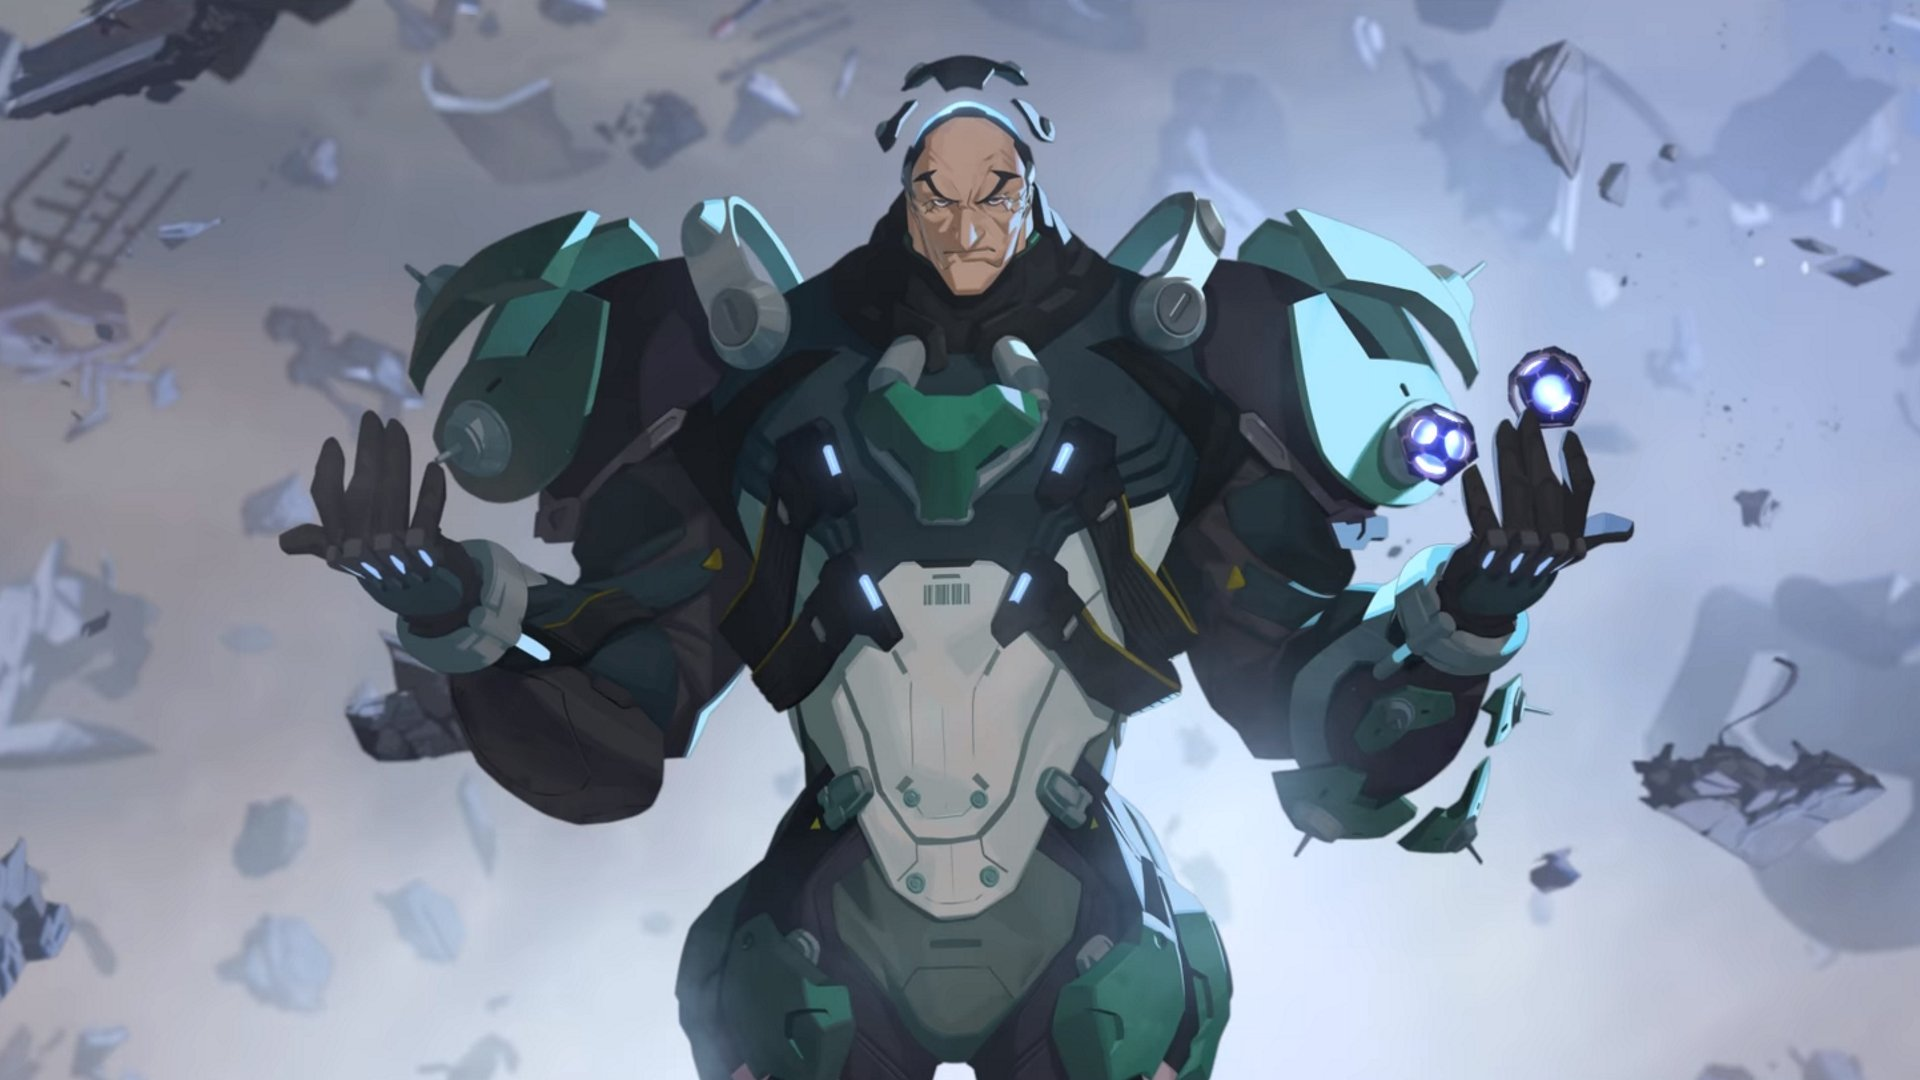 Sigma in his origin story - Sigma abilities in Overwatch.